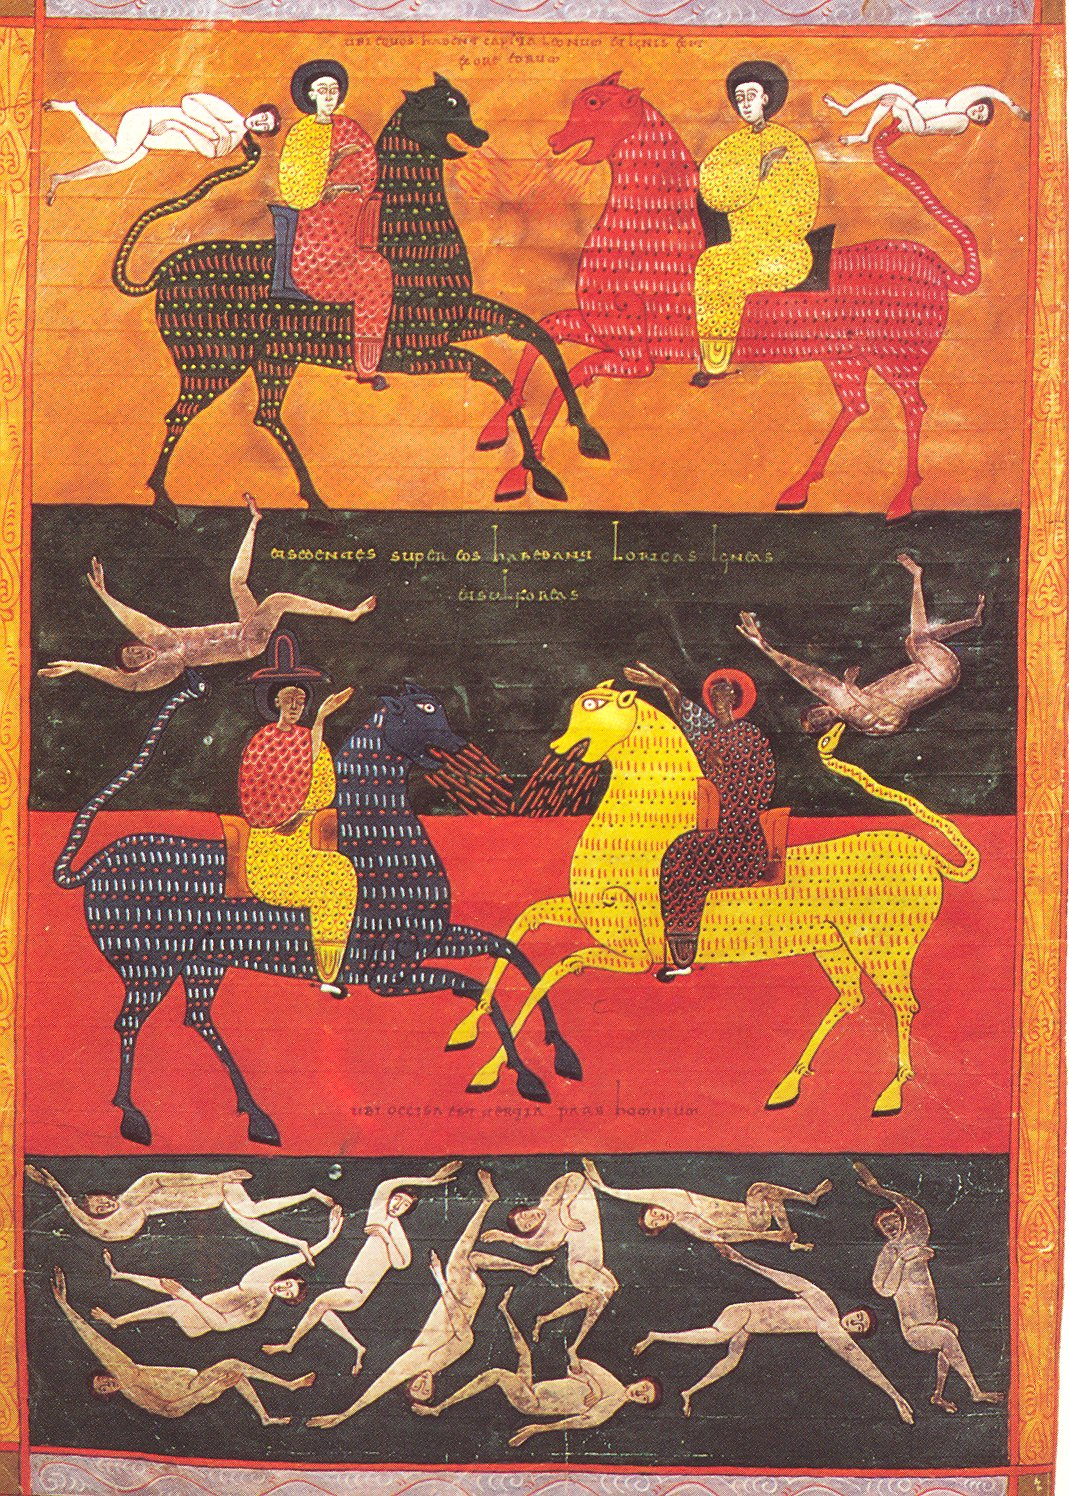 Four Horsemen Of Apocalypse (Sixth trumpet scene), illustration of 'Beato of Valcavado', 1047, Beato of Facundus, León, Al-Andalus (now Spain)